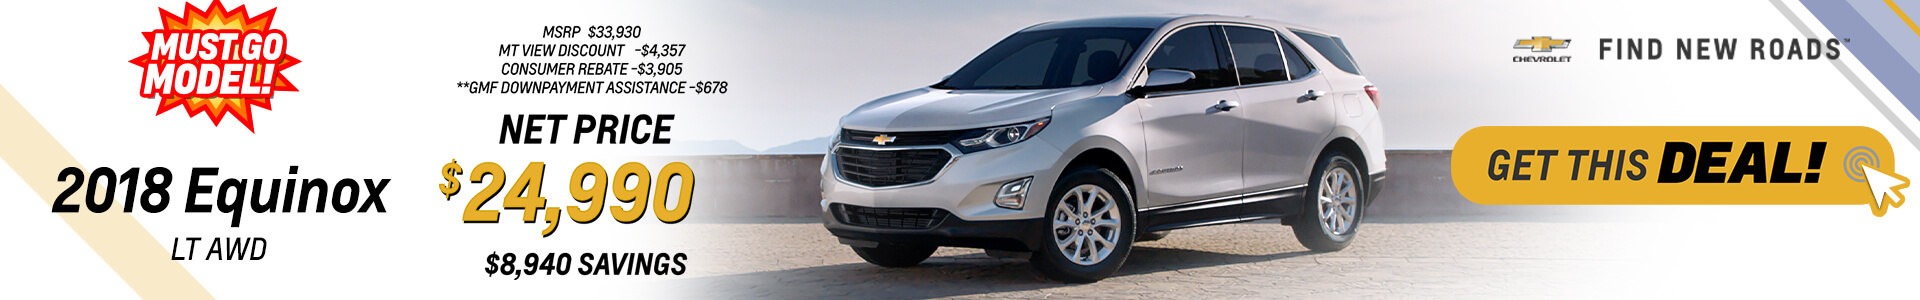 2018 Chevy Equinox Purchase for 24,990